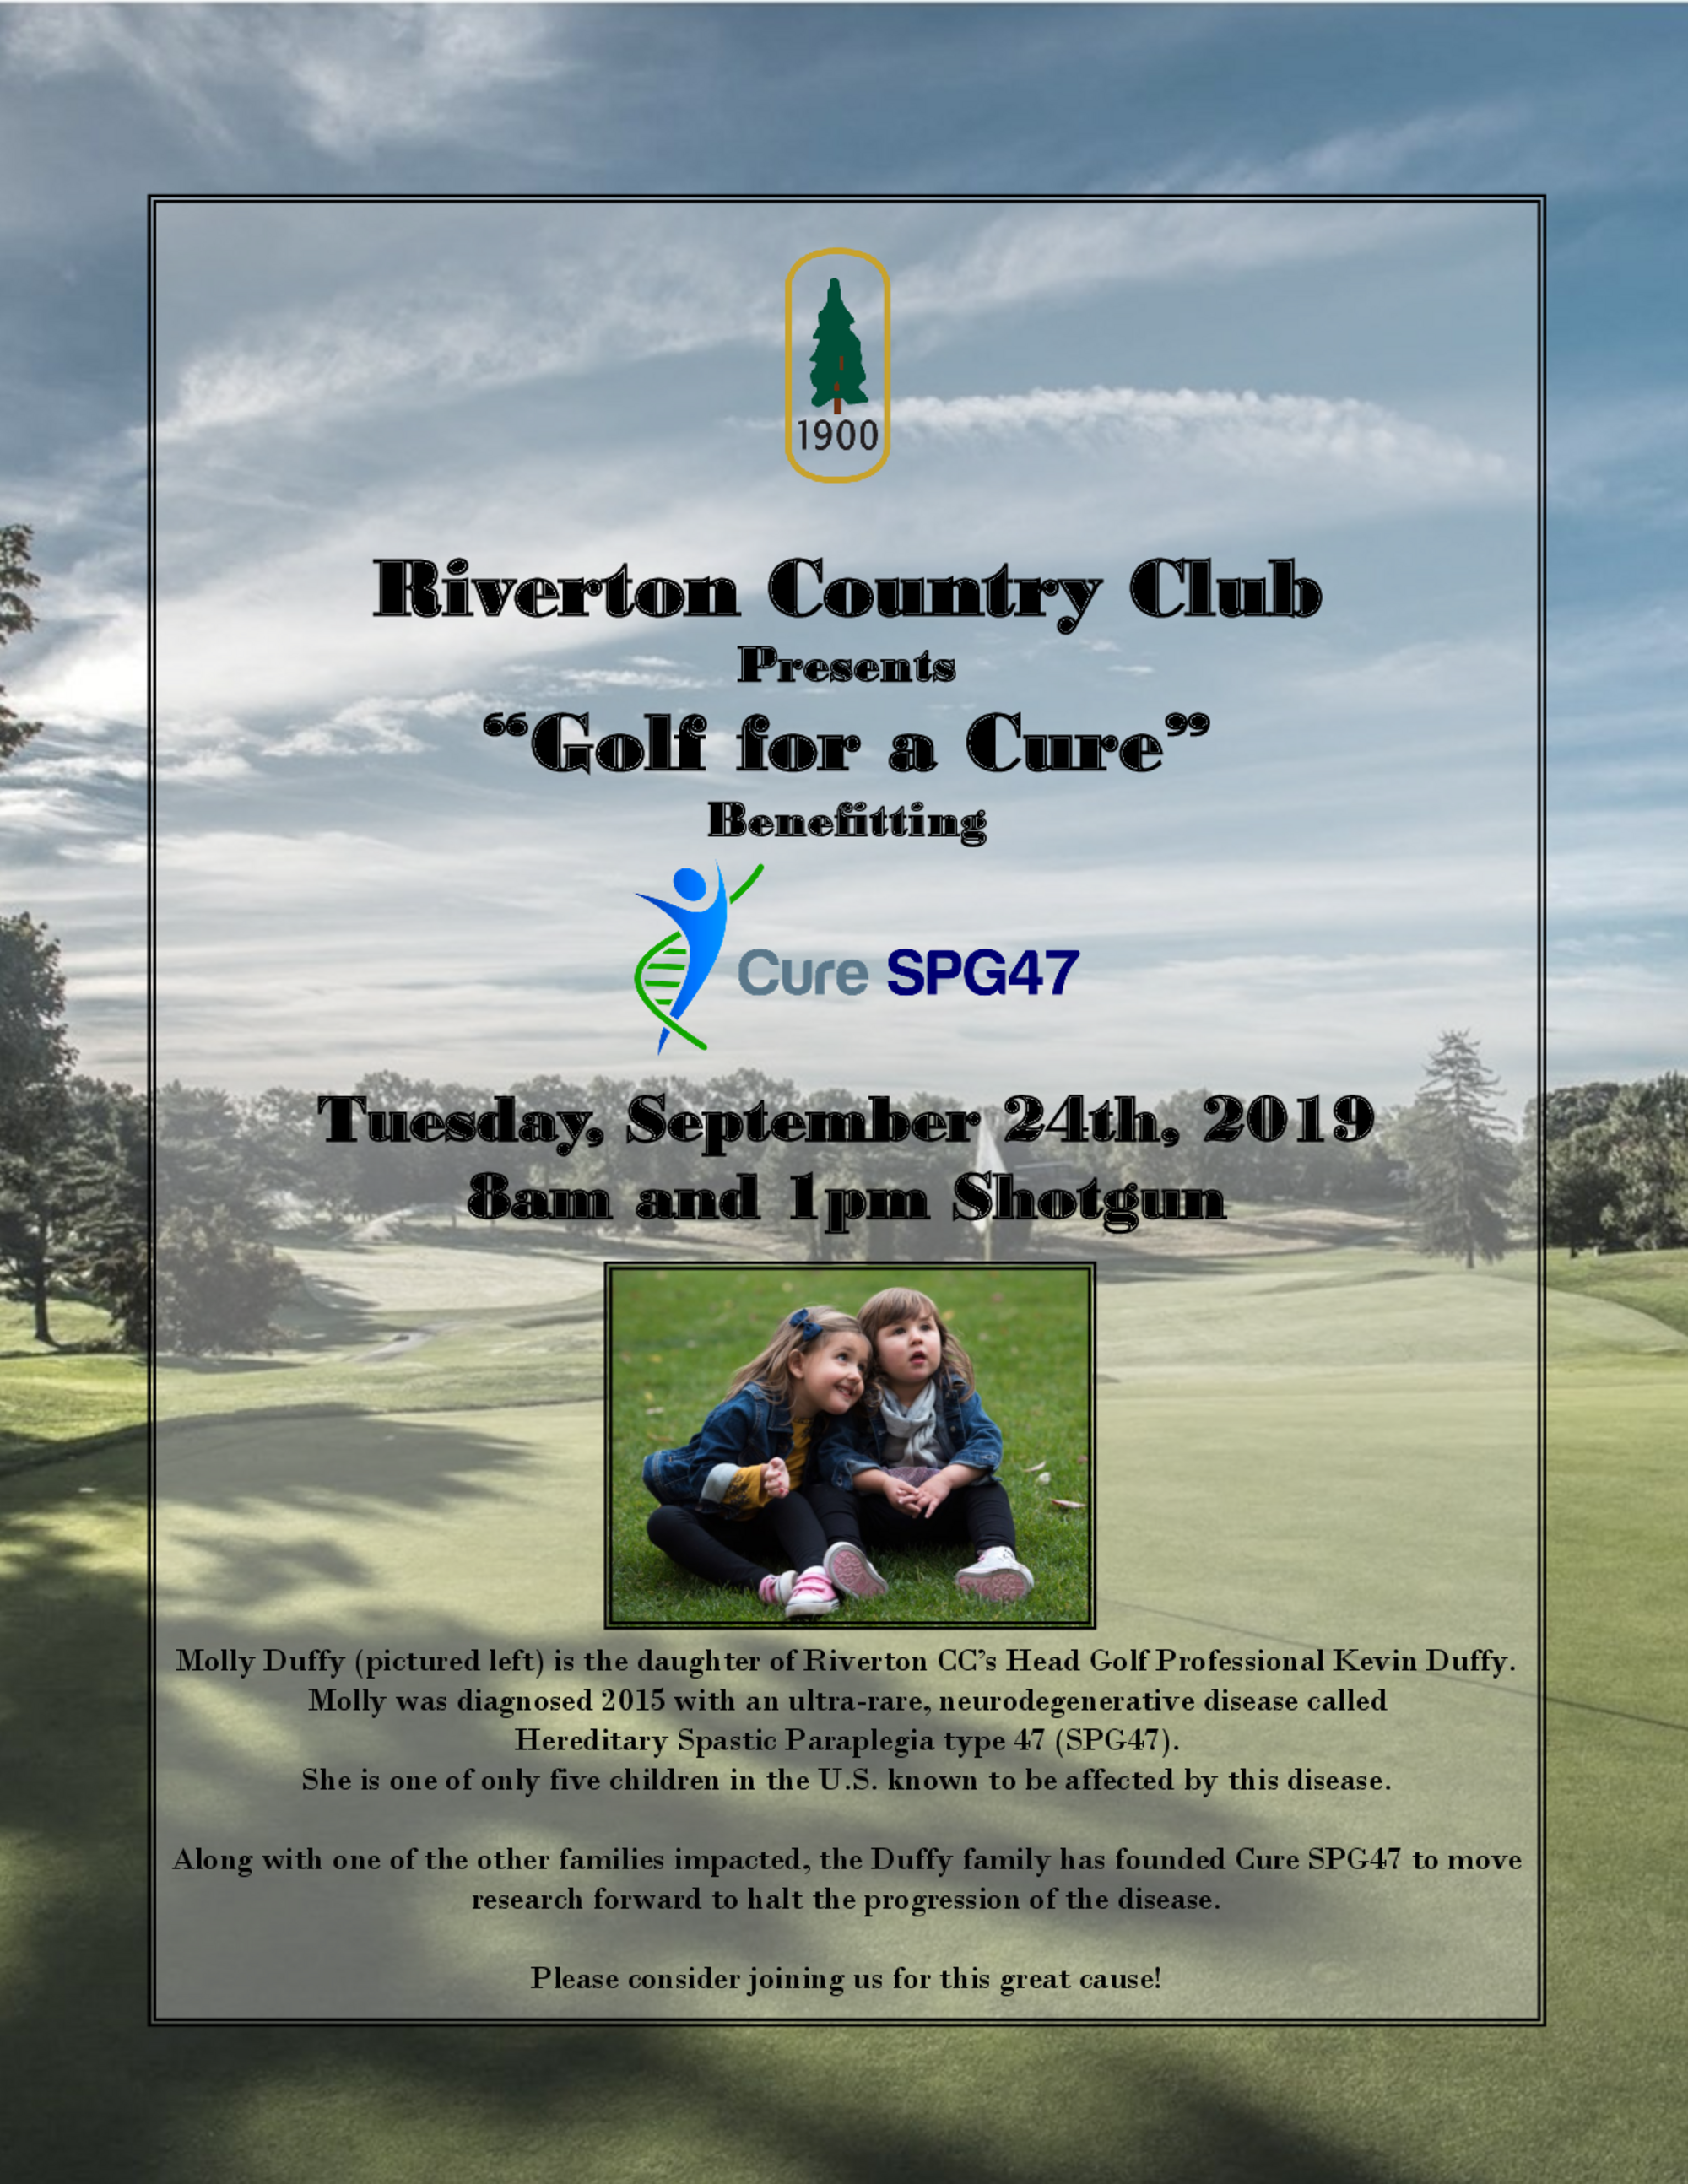 Cure spg47 outing save the date 2019 1